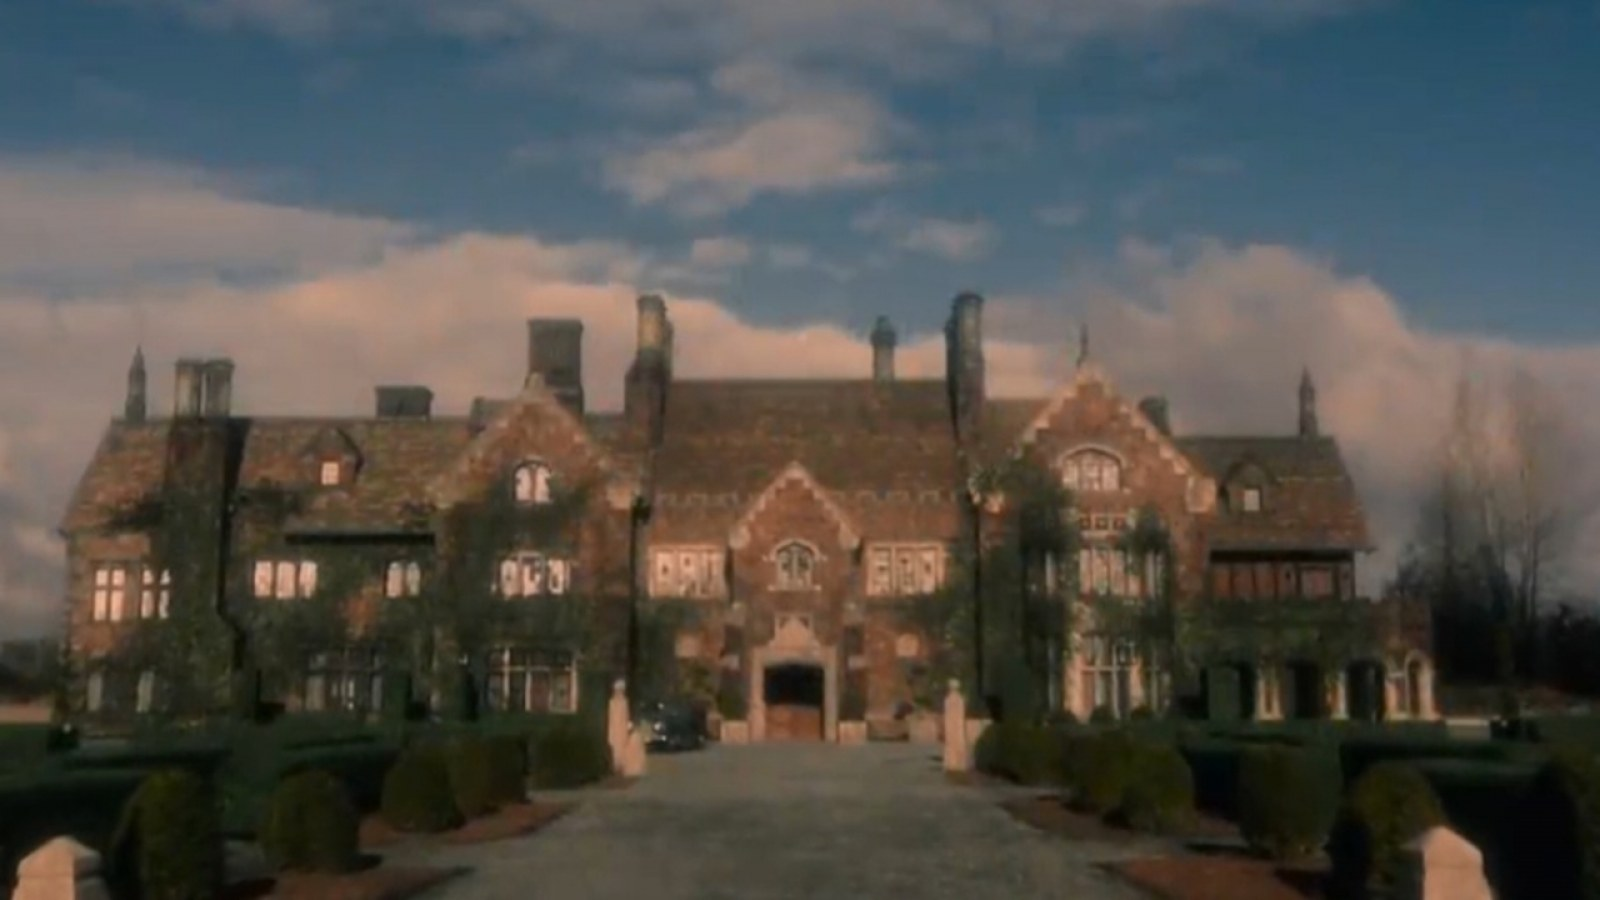 The Haunting Of Bly Manor The Real House That Inspired Bly Manor